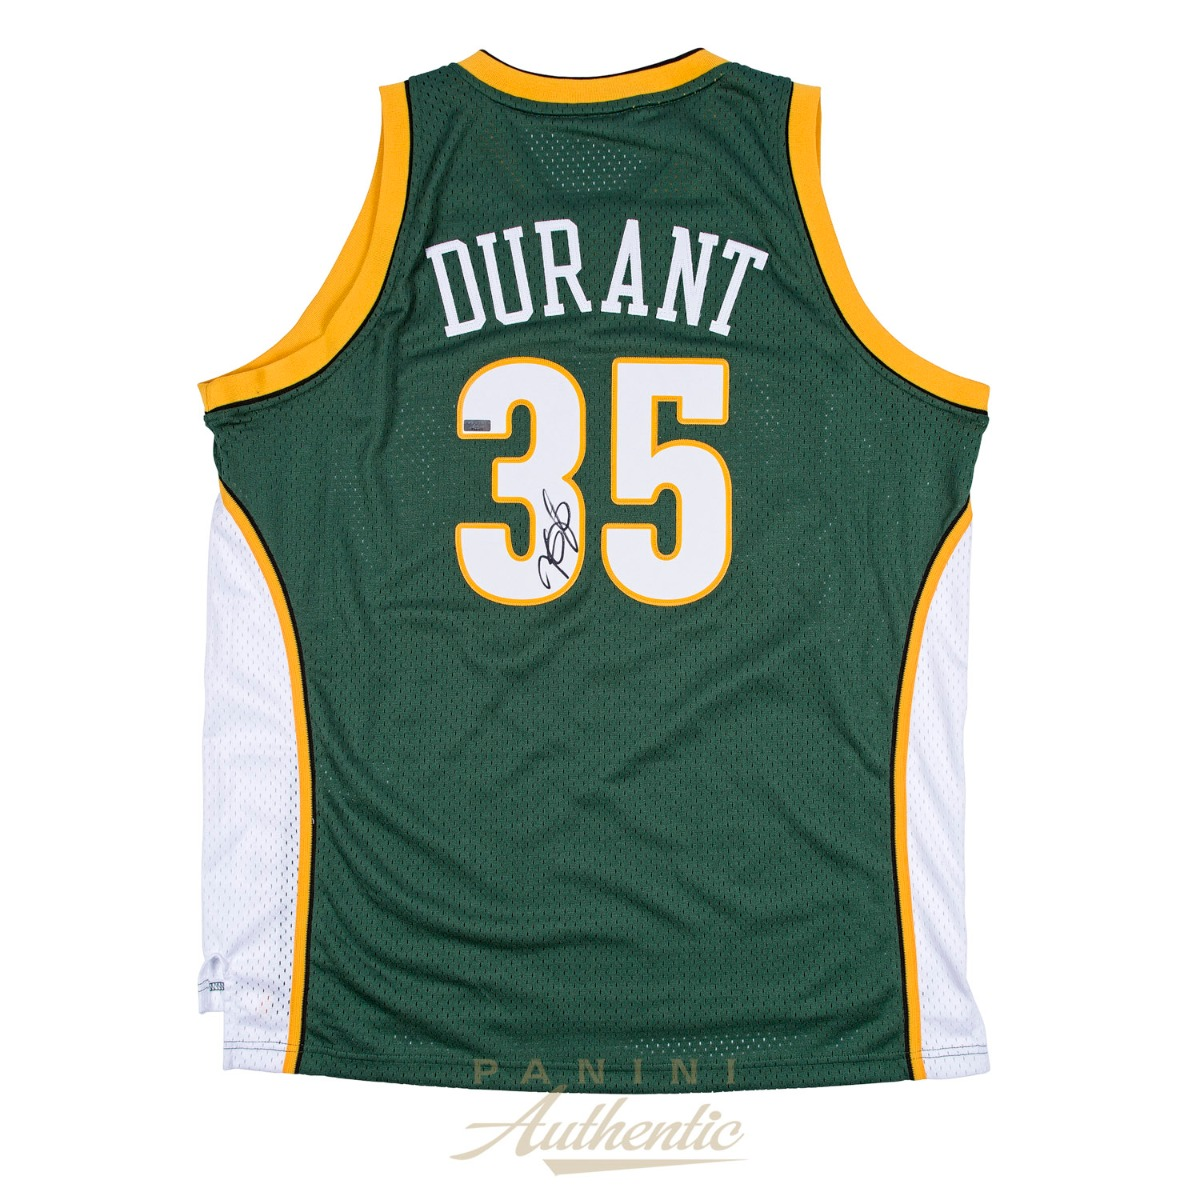 9027acc0008 Kevin Durant Autographed Green Supersonics Swingman Jersey ~ Open Edition  Item ~